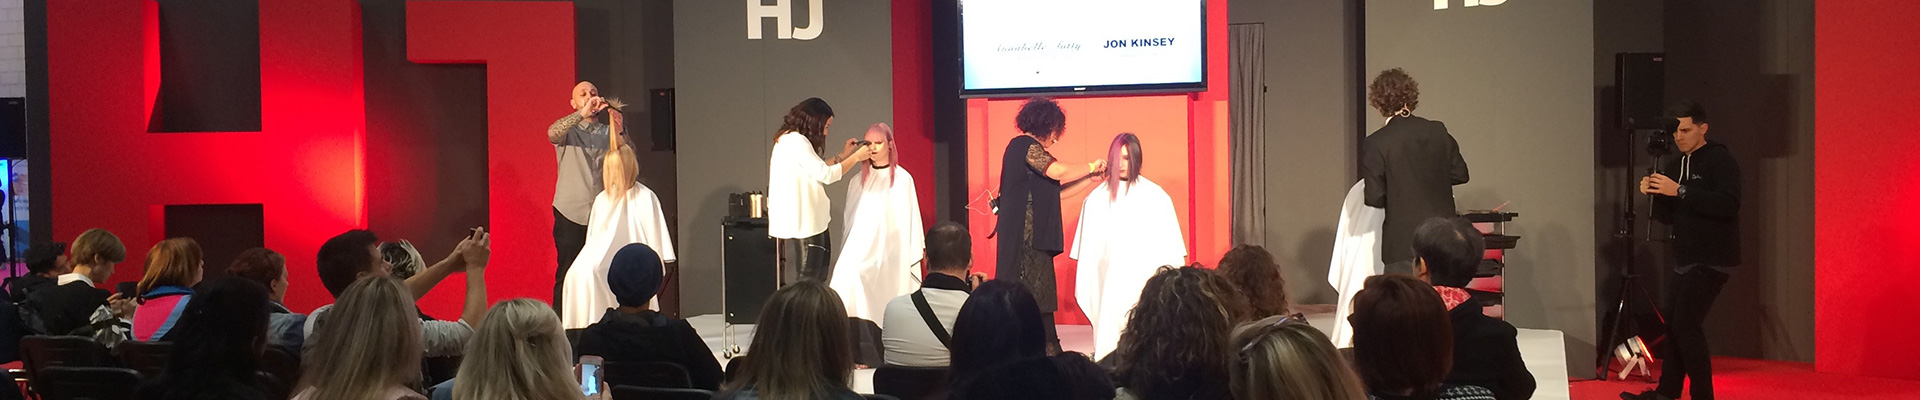 The HJ Stage at Salon International